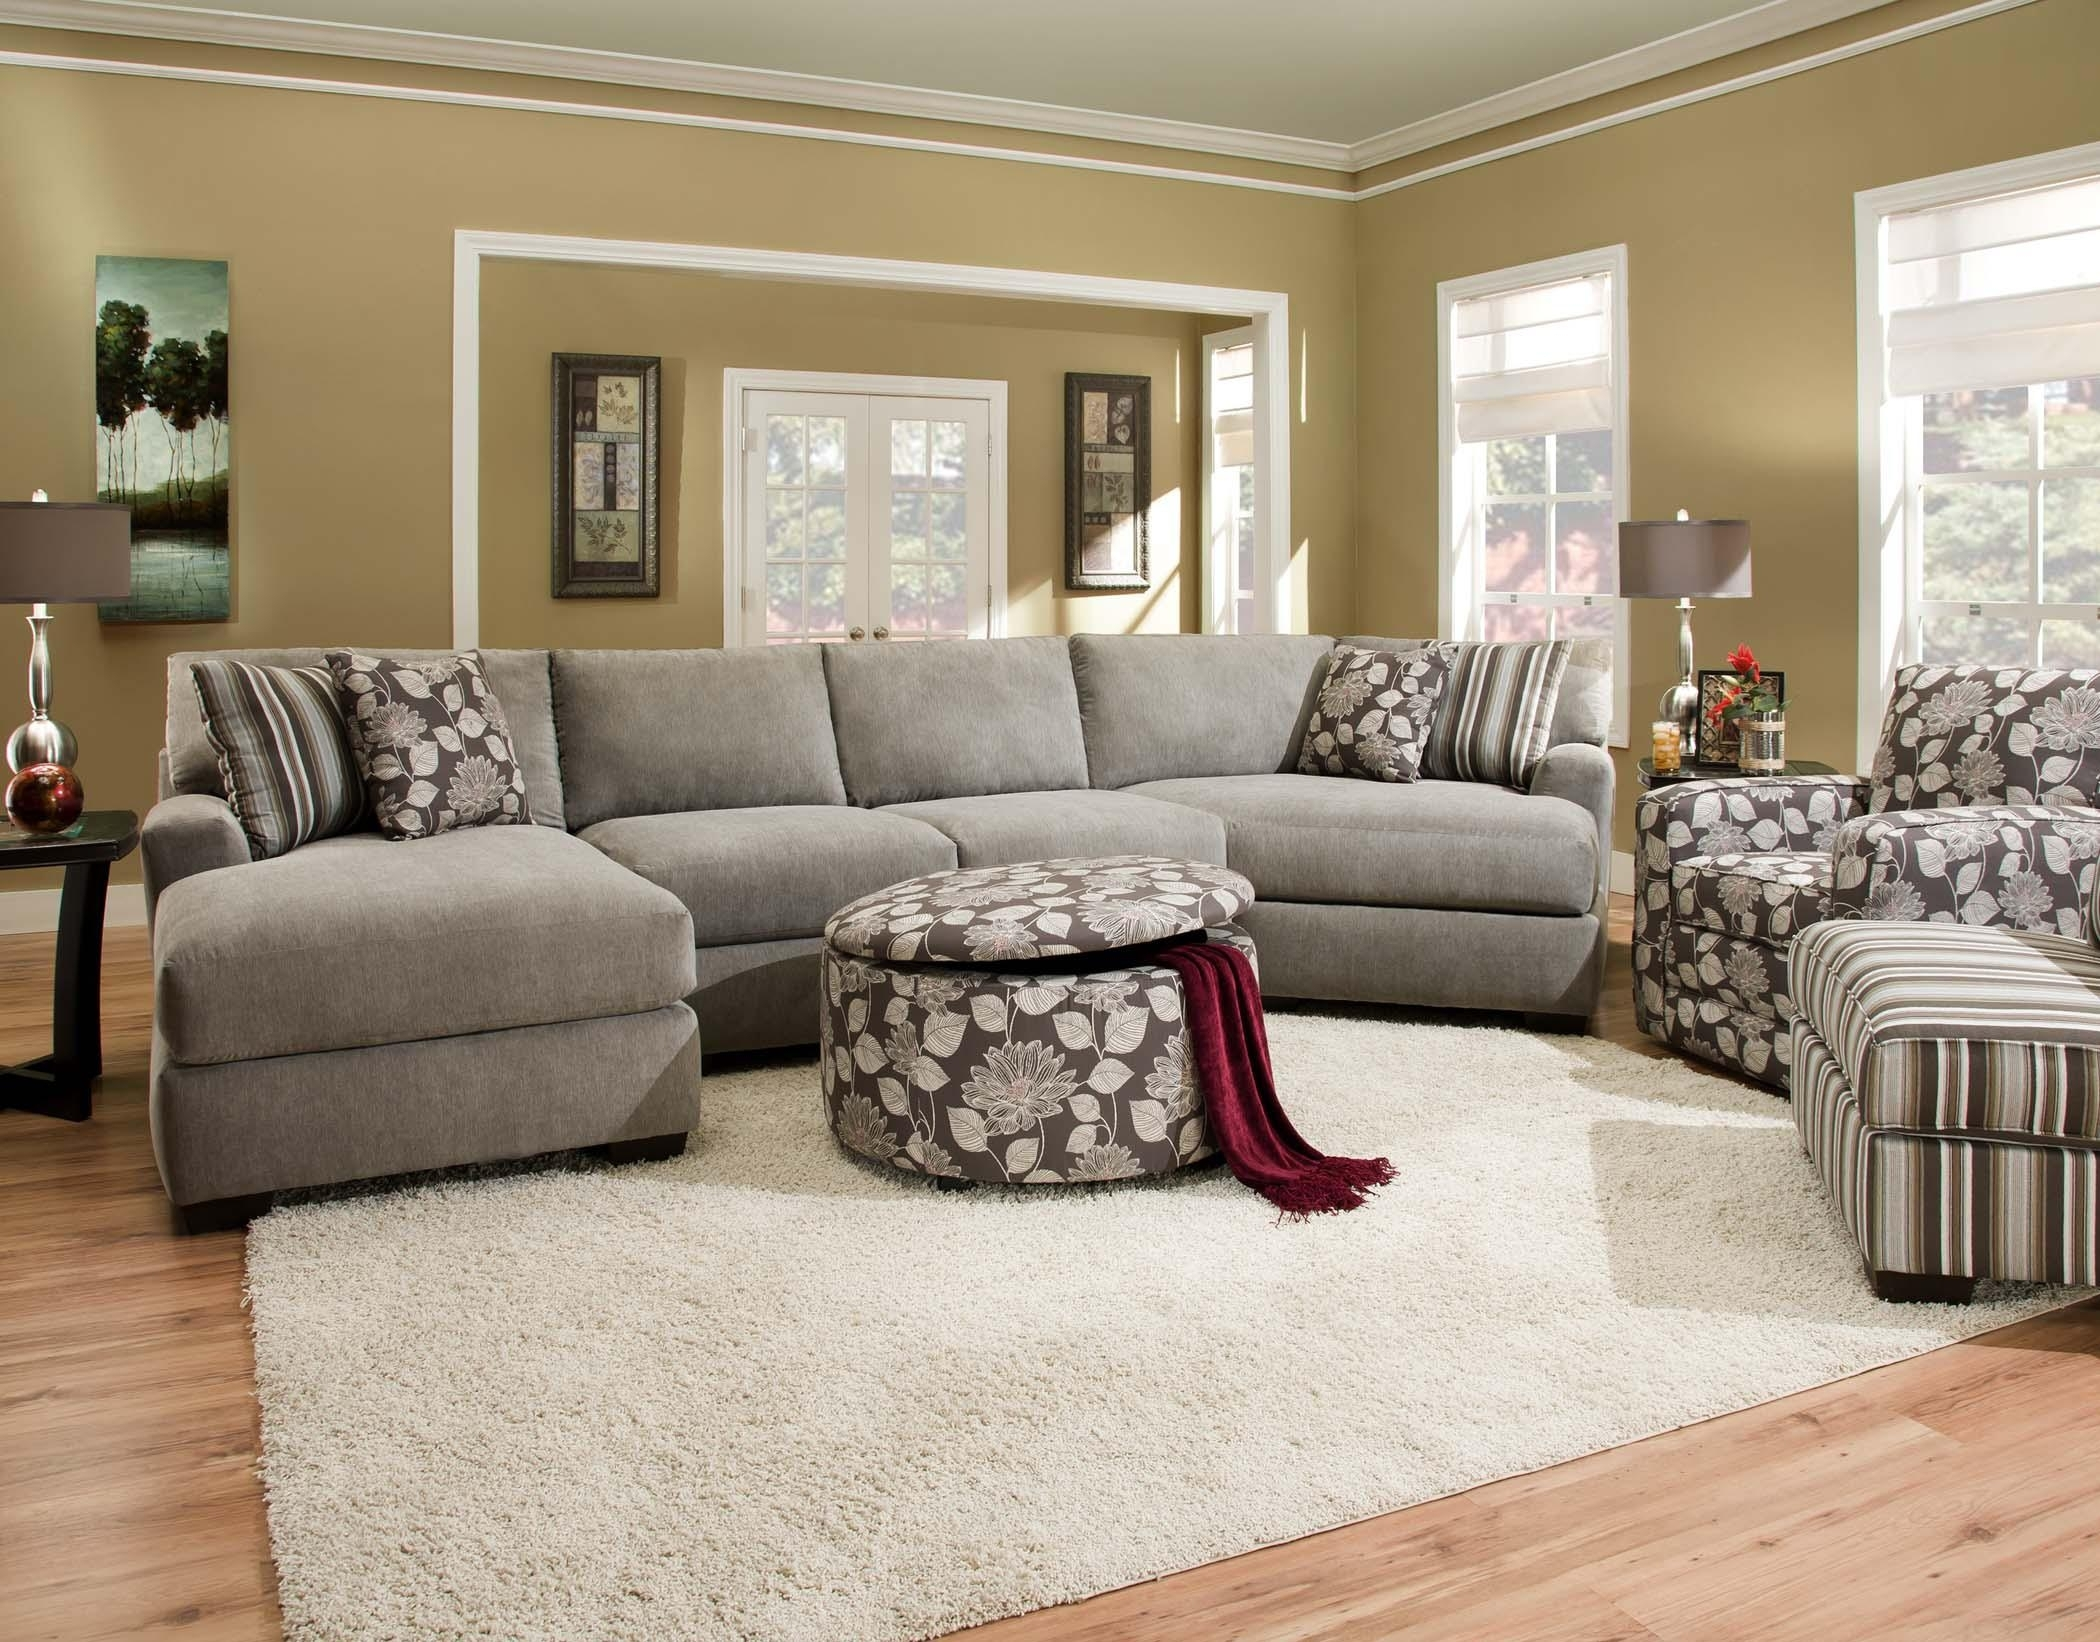 Corinthian 29A0 Sectional Sofa With 4 Seats | Standard Furniture Inside Josephine 2 Piece Sectionals With Laf Sofa (Image 7 of 25)